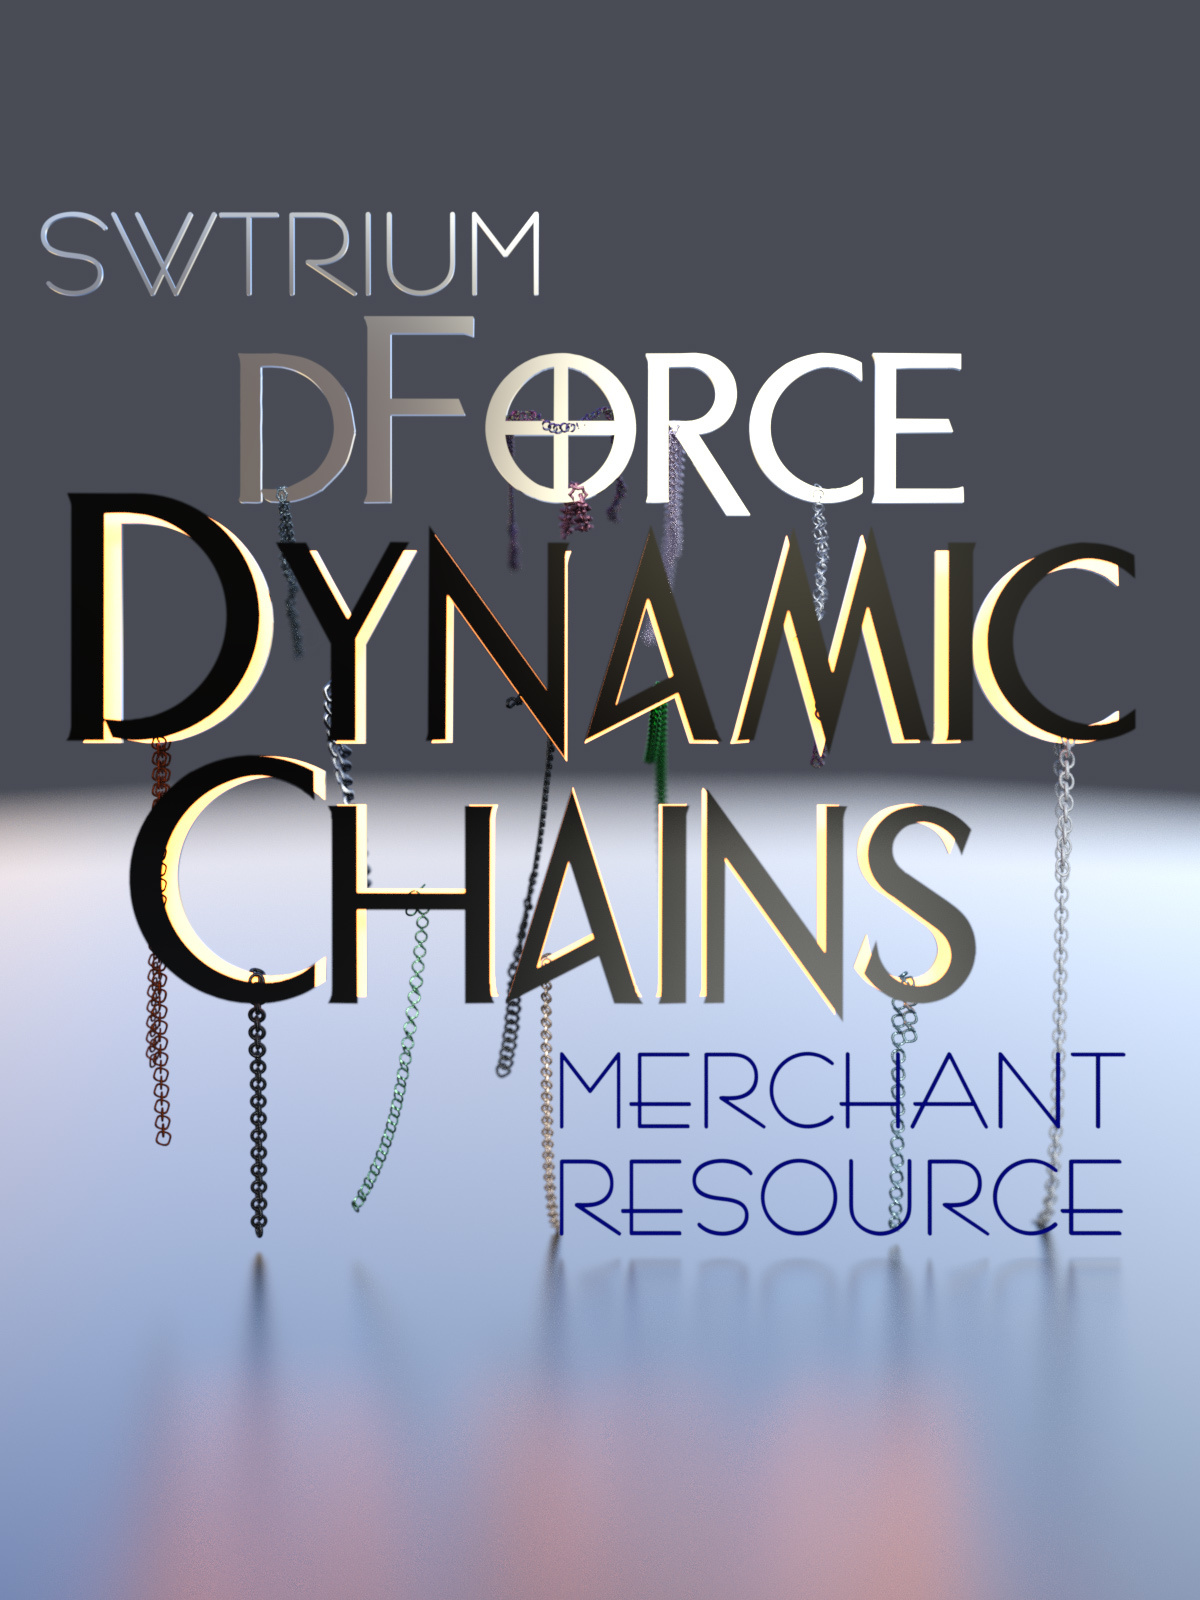 SWT dForce Dynamic Chains Merchant Resource by SWTrium